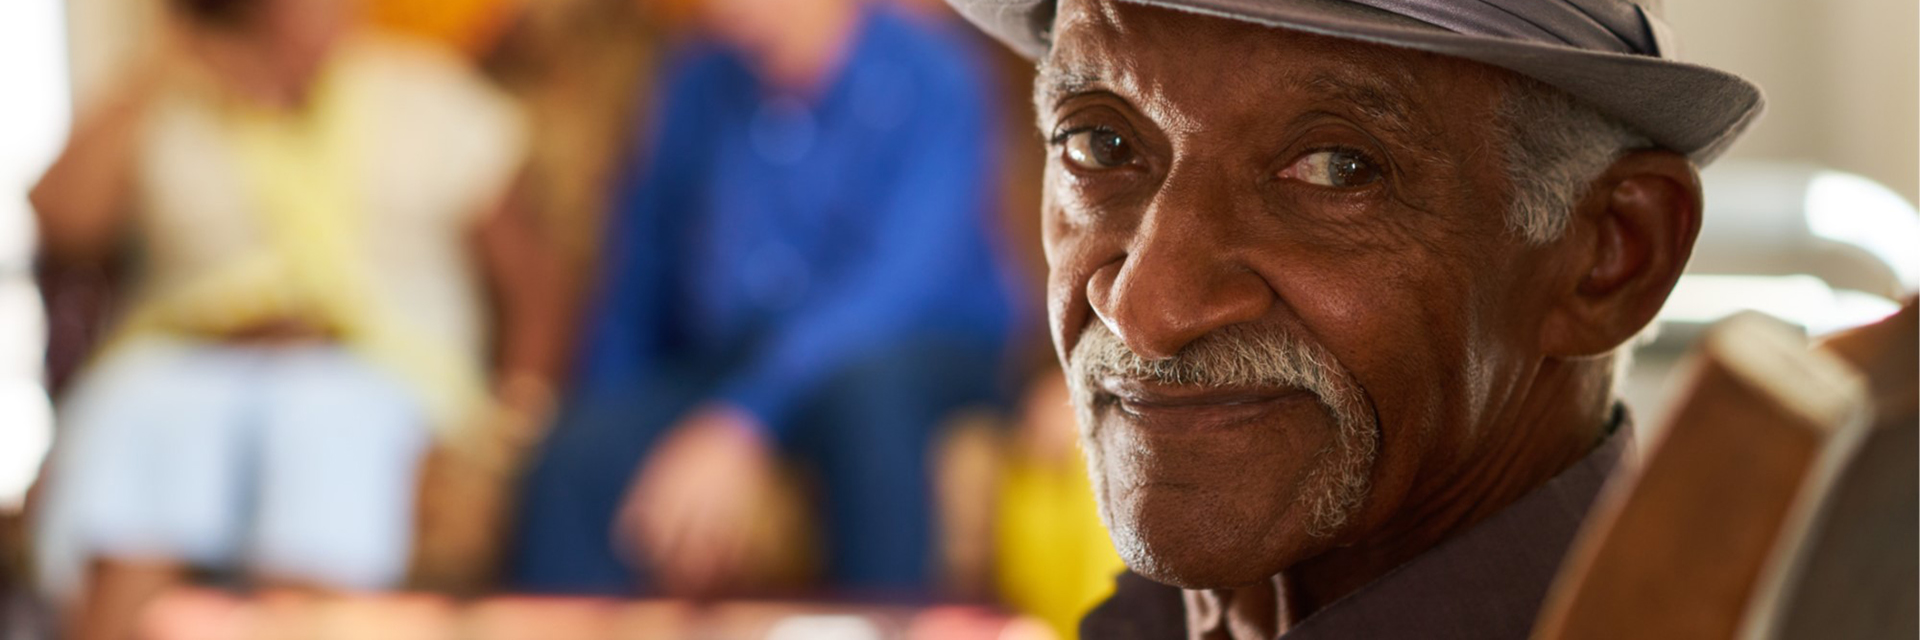 man with mustache and fedora looking at camera